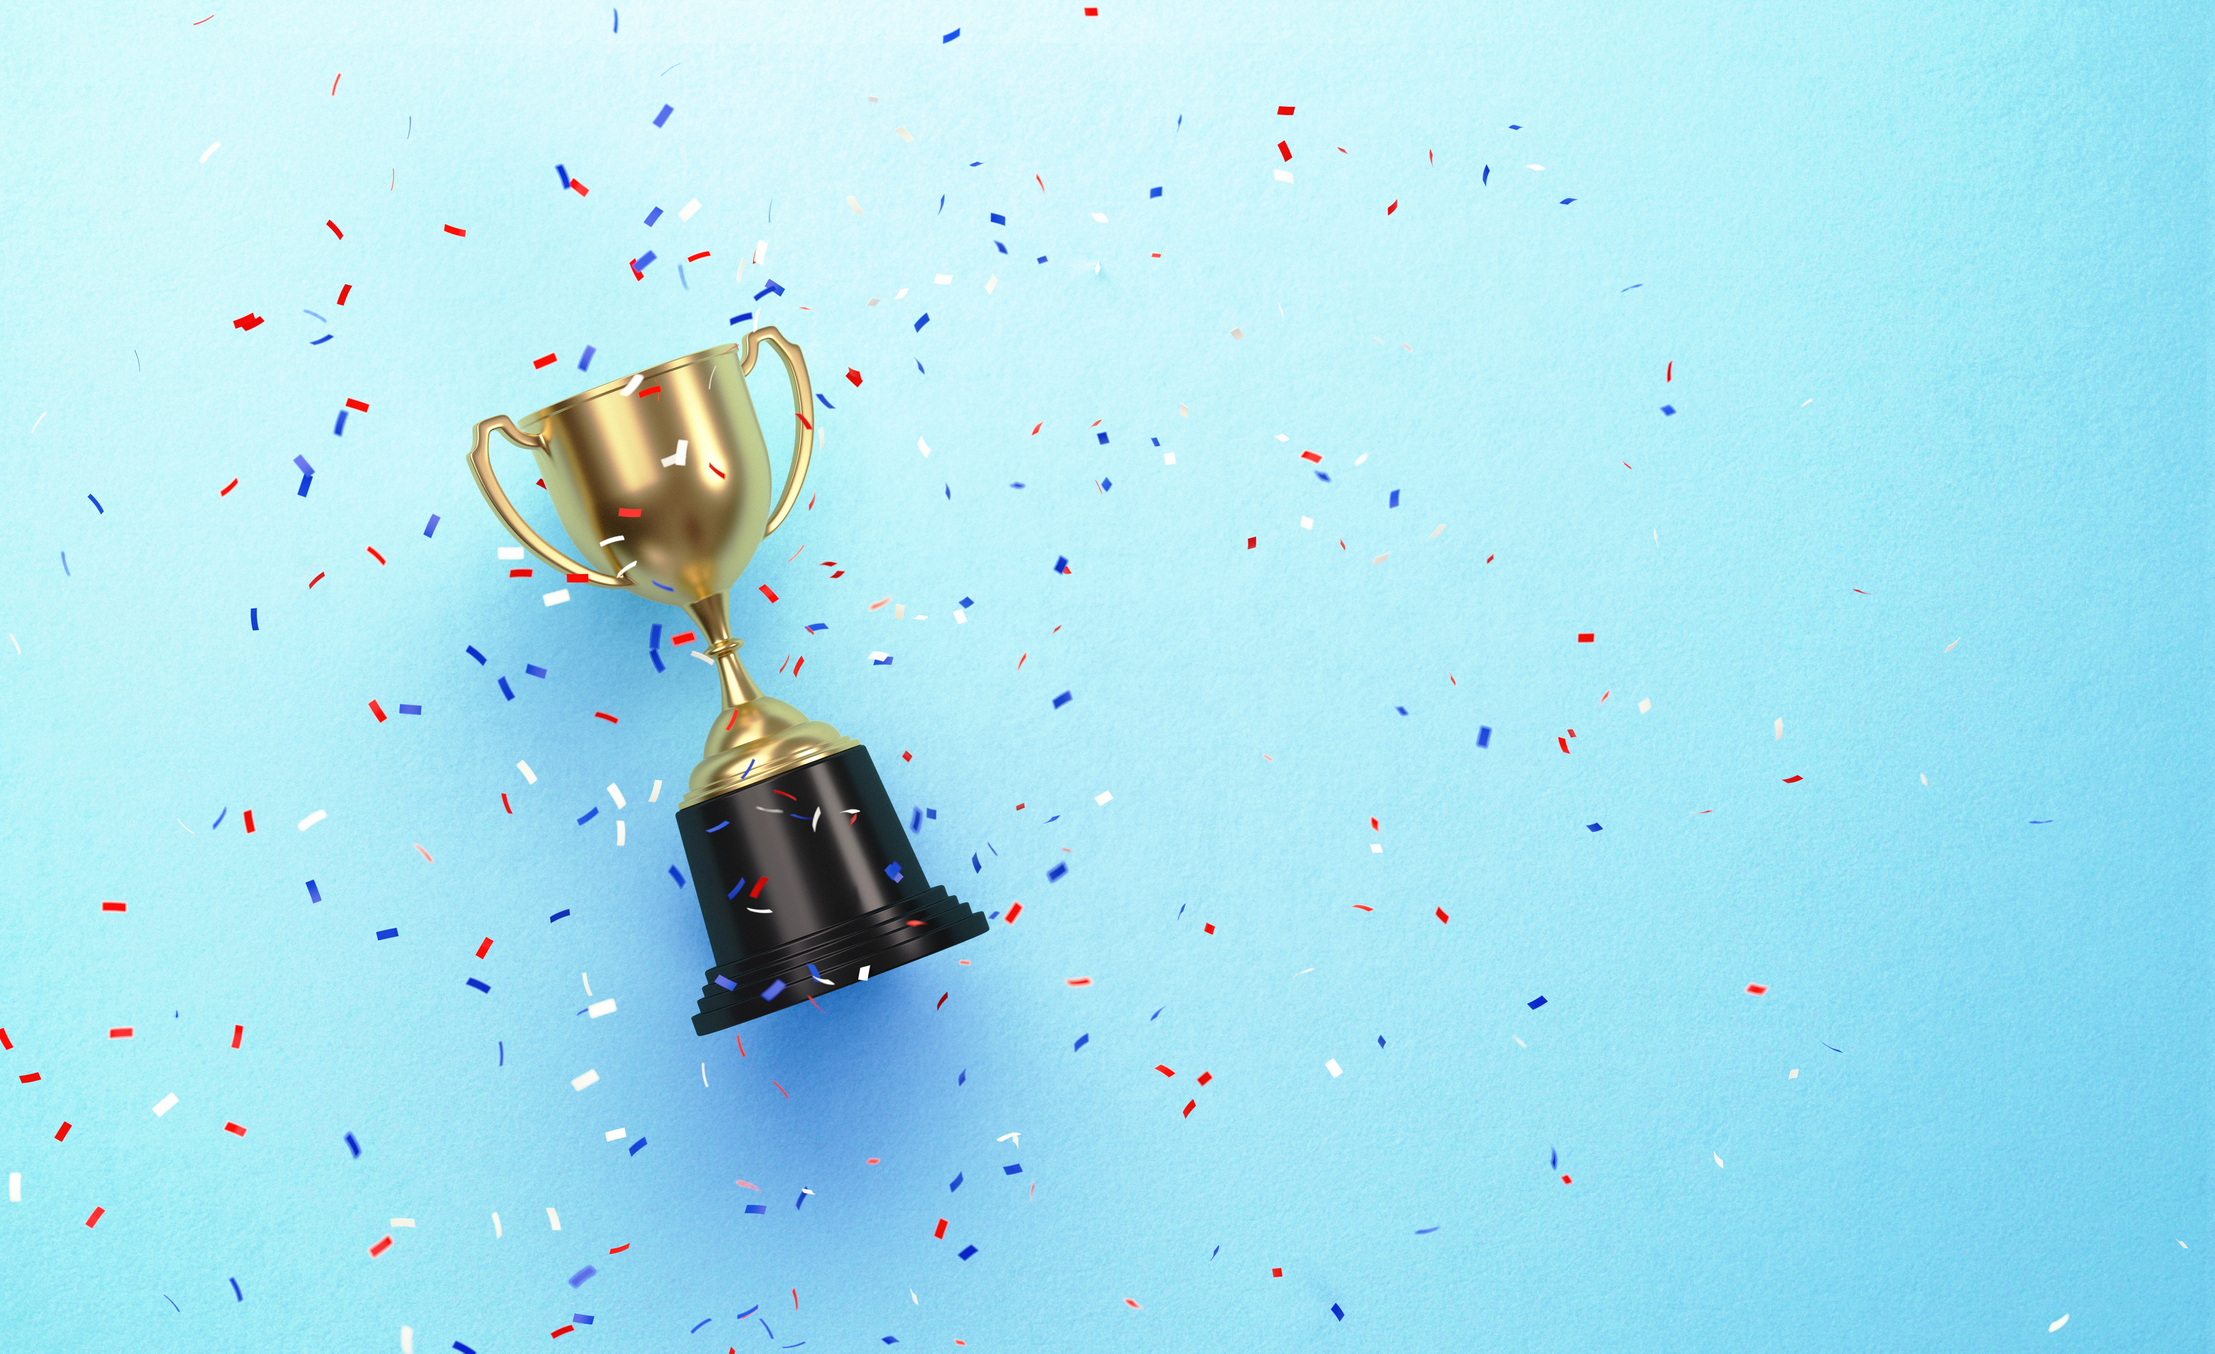 Image depicting a gold cup with confetti falling on a blue background to symbolize winning at customer service in a post-pandemic world.